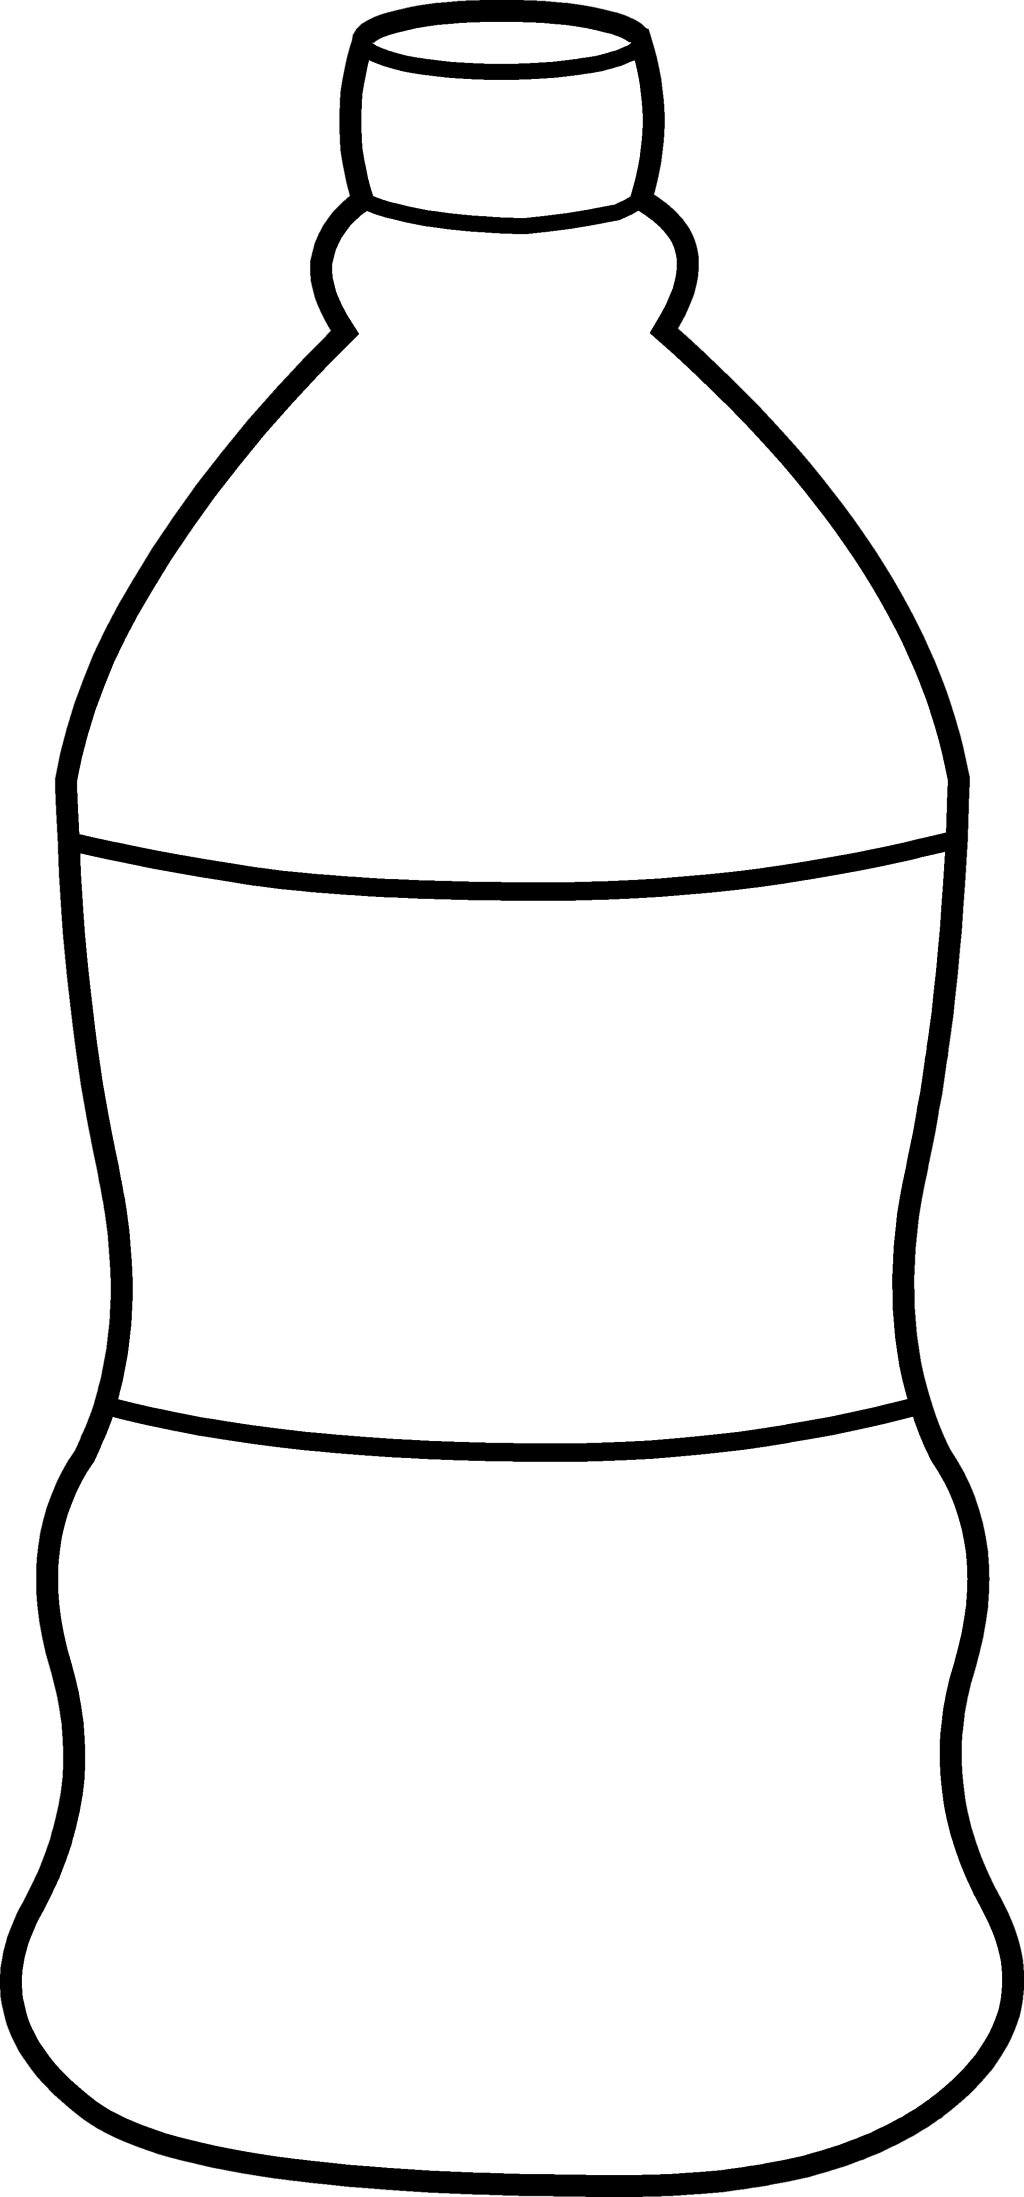 Bottle drawing at getdrawings. Coloring clipart water